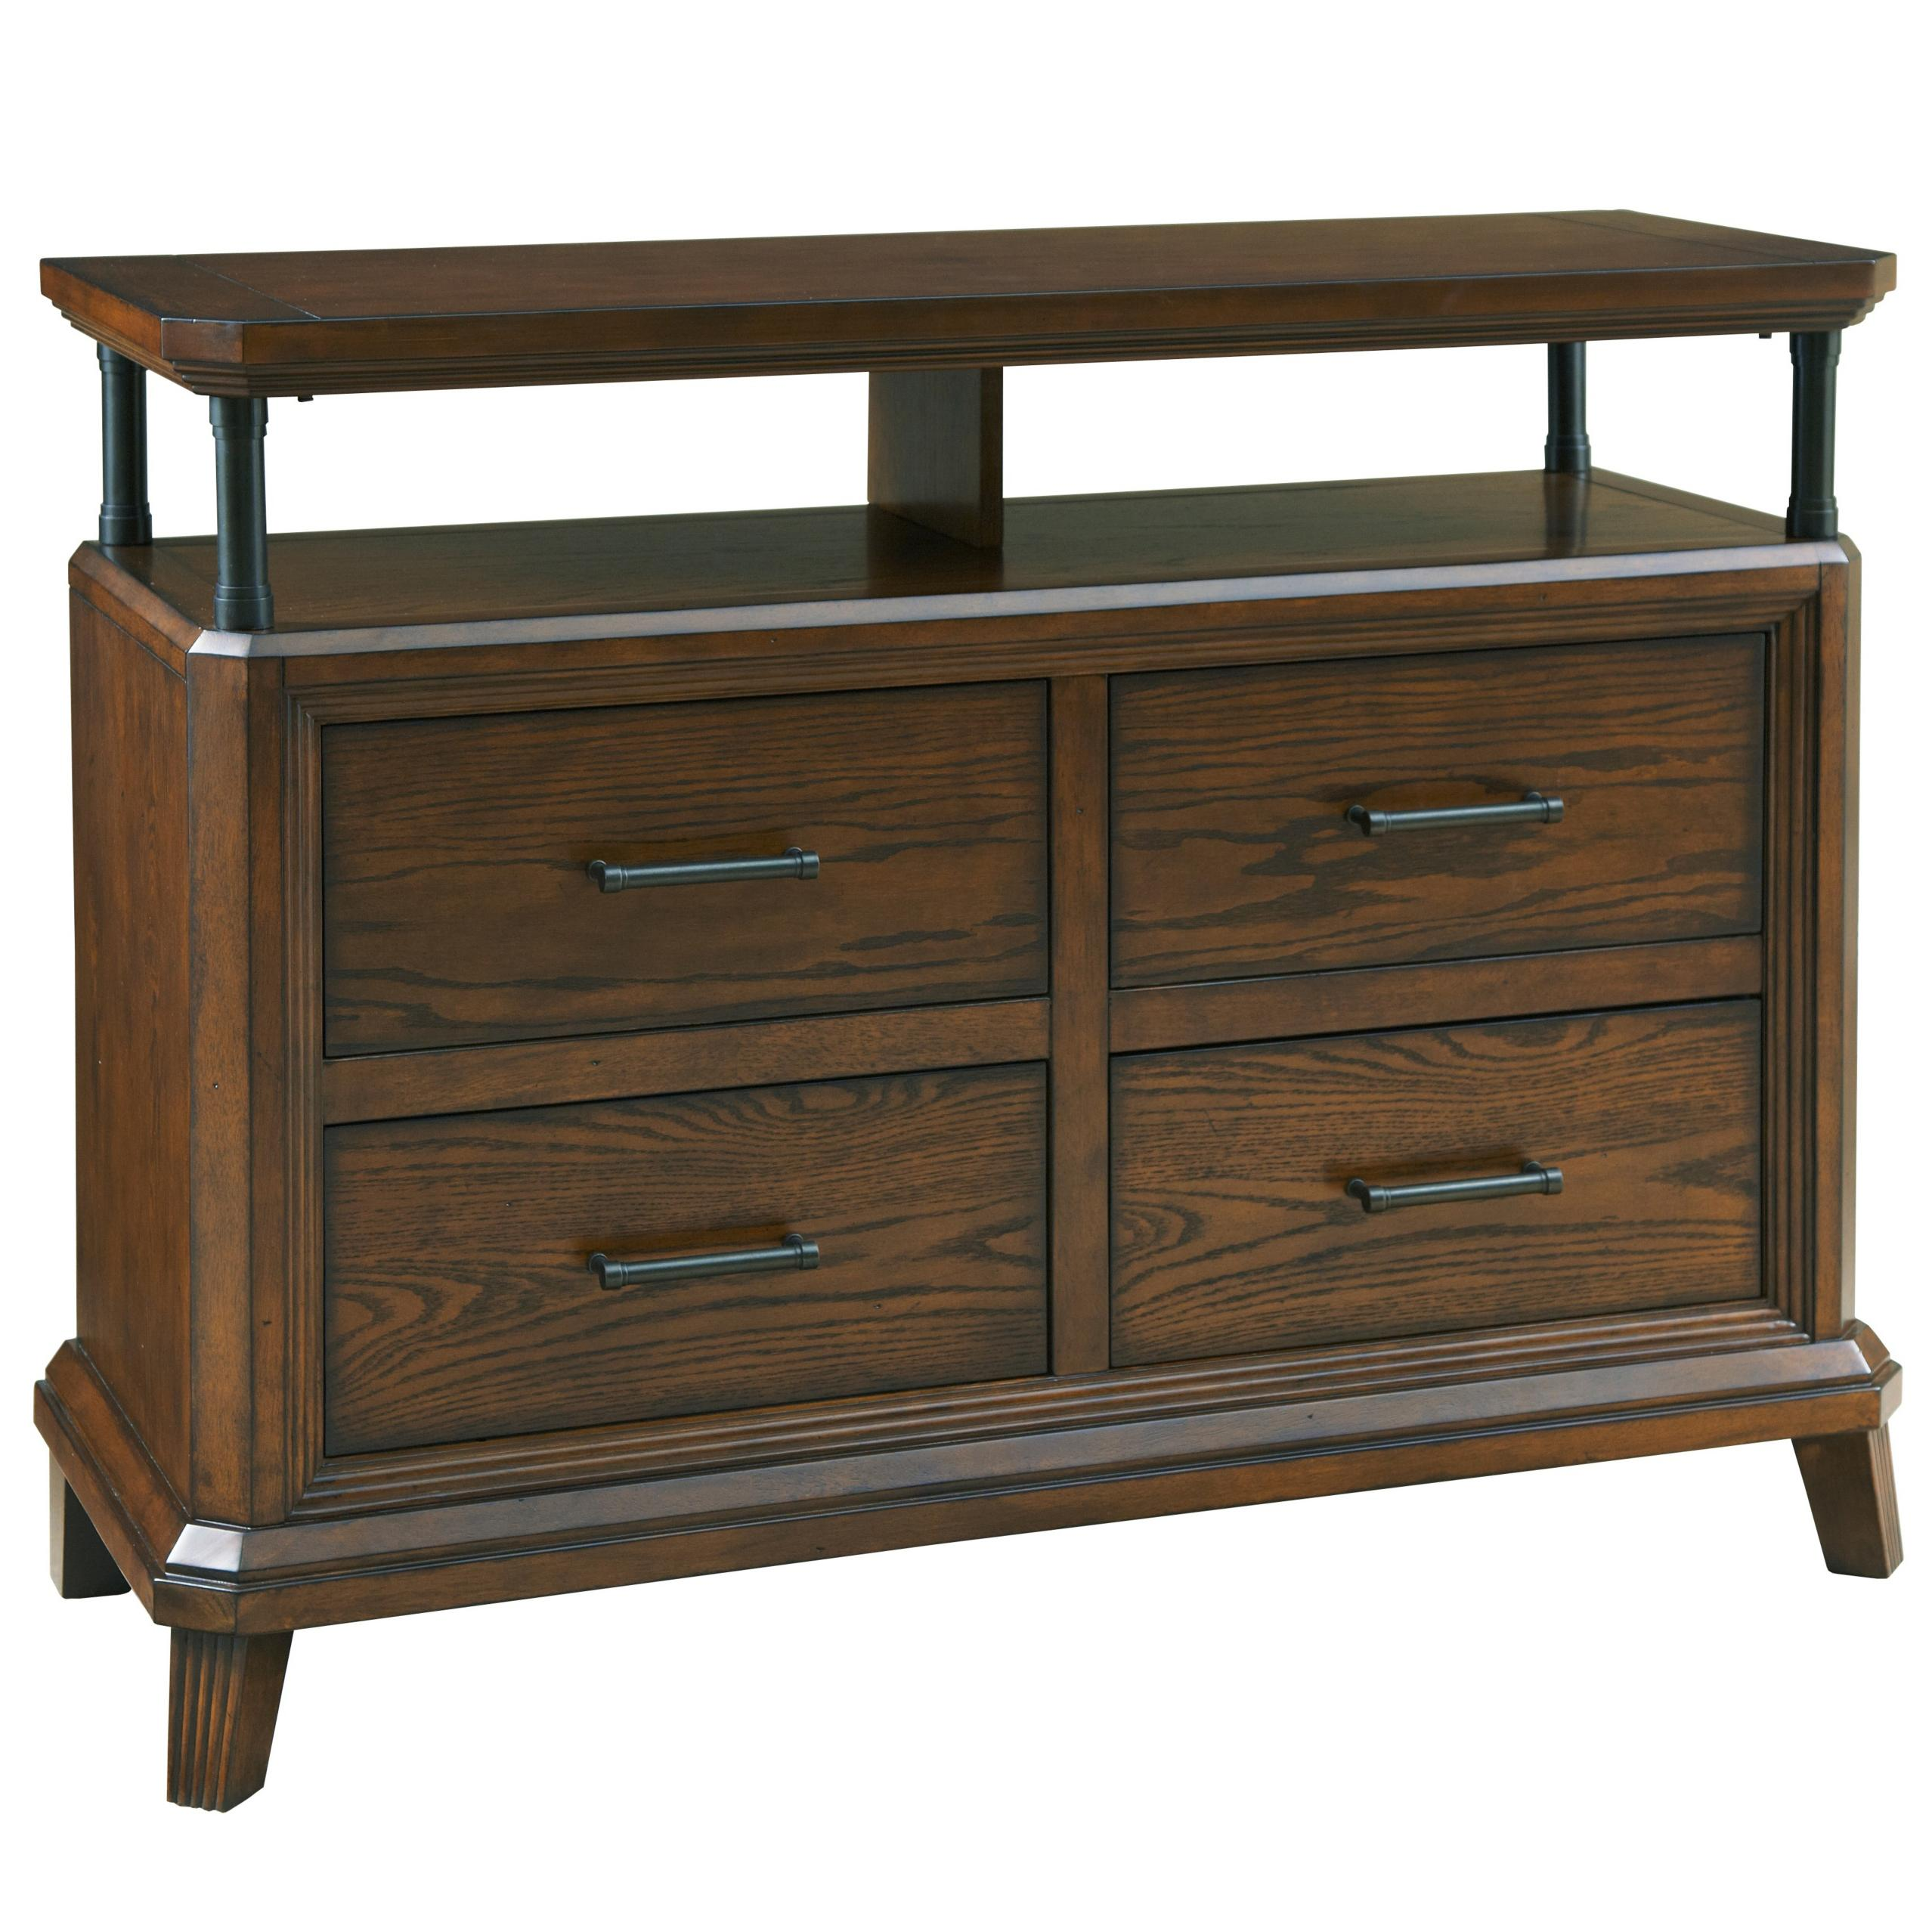 Broyhill Furniture Estes Park Media Chest - Item Number: 4364-225